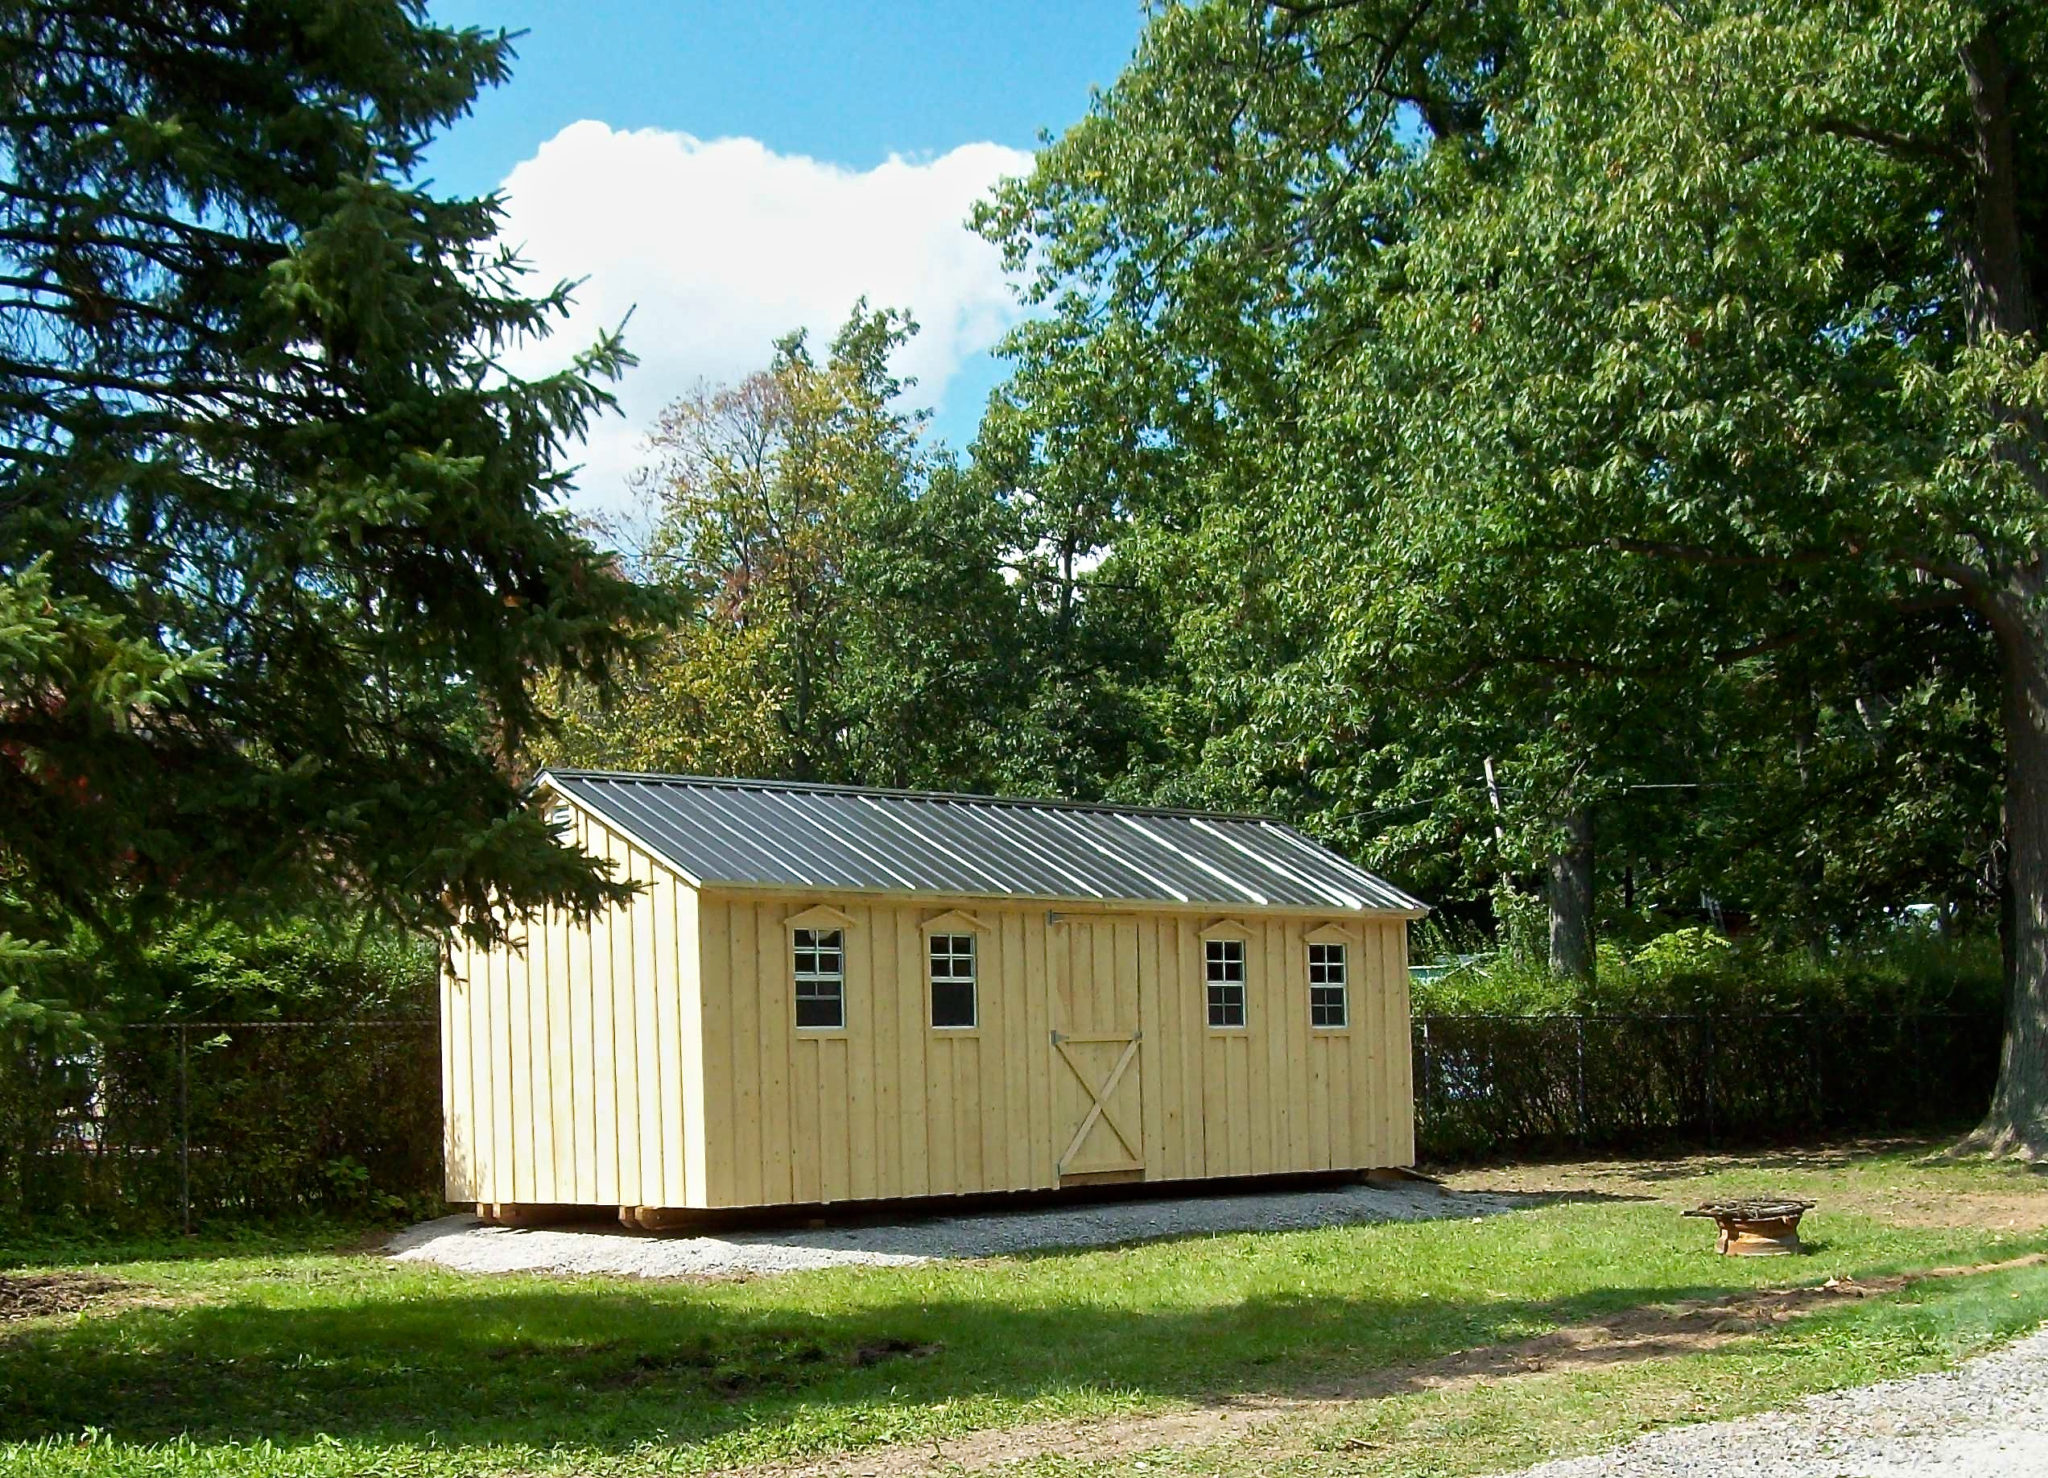 Amish Shed With Green Roof & A Double Door